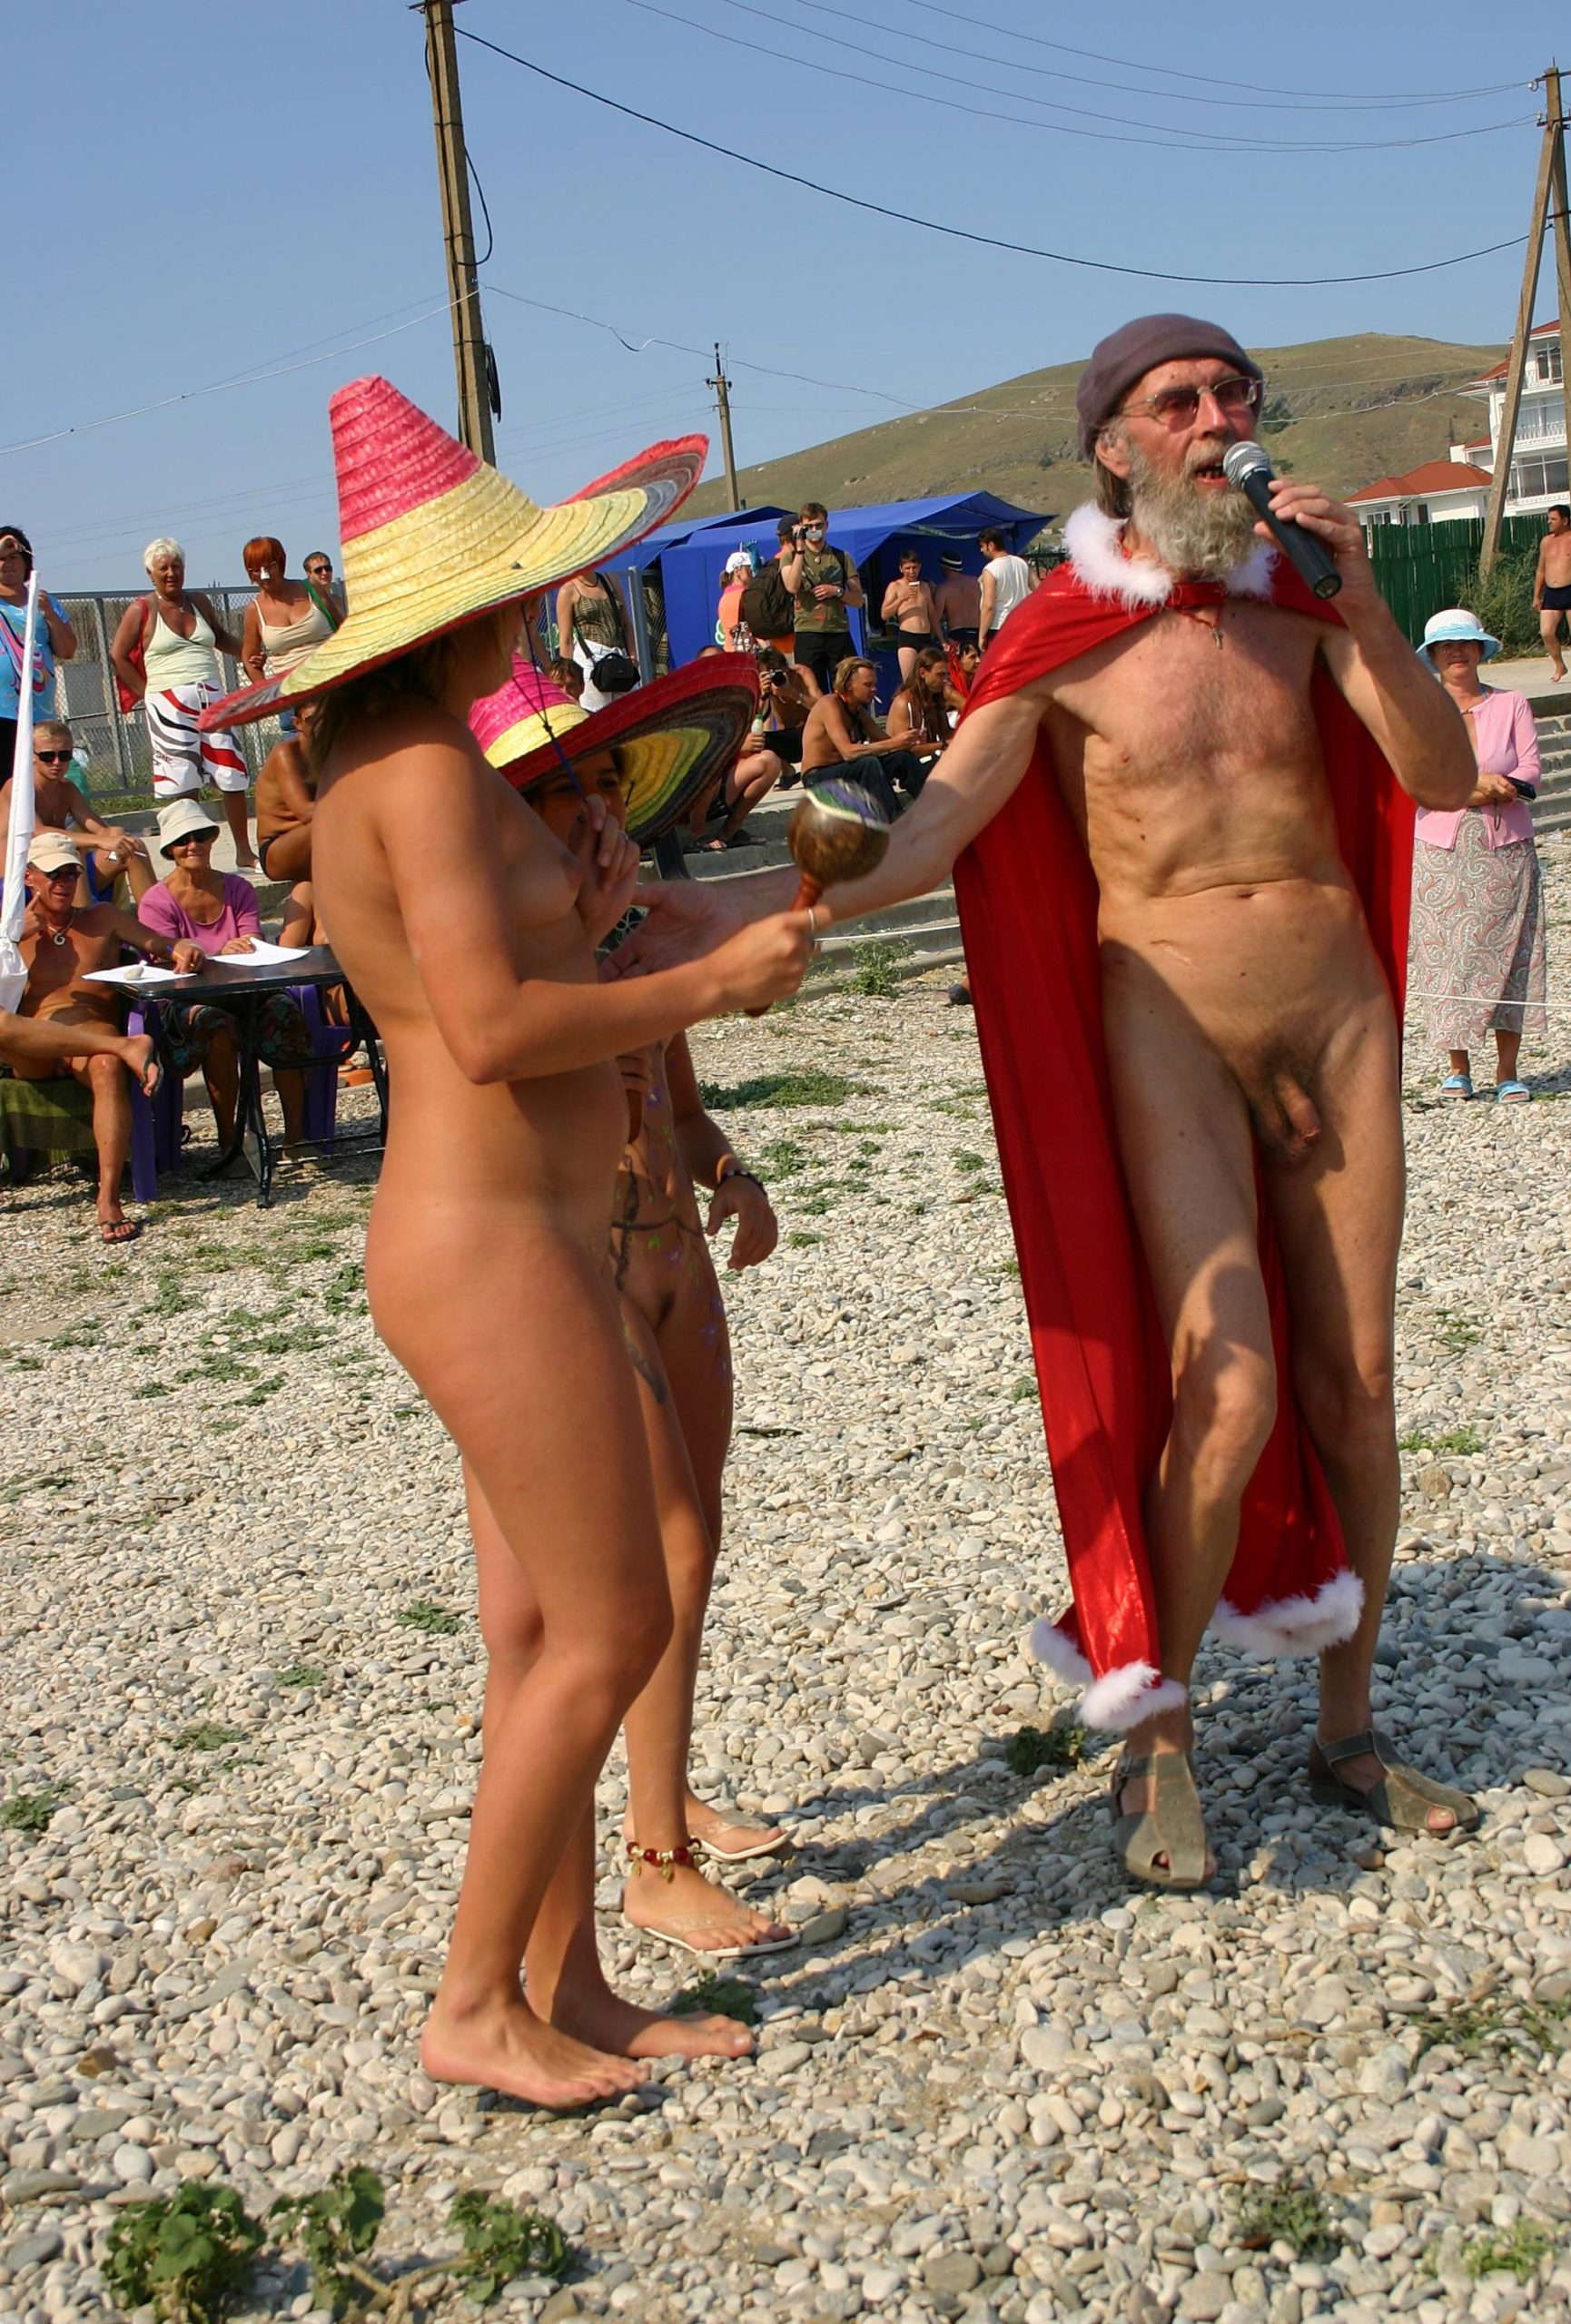 Purenudism Images-Costume Hat Day Dance - 2